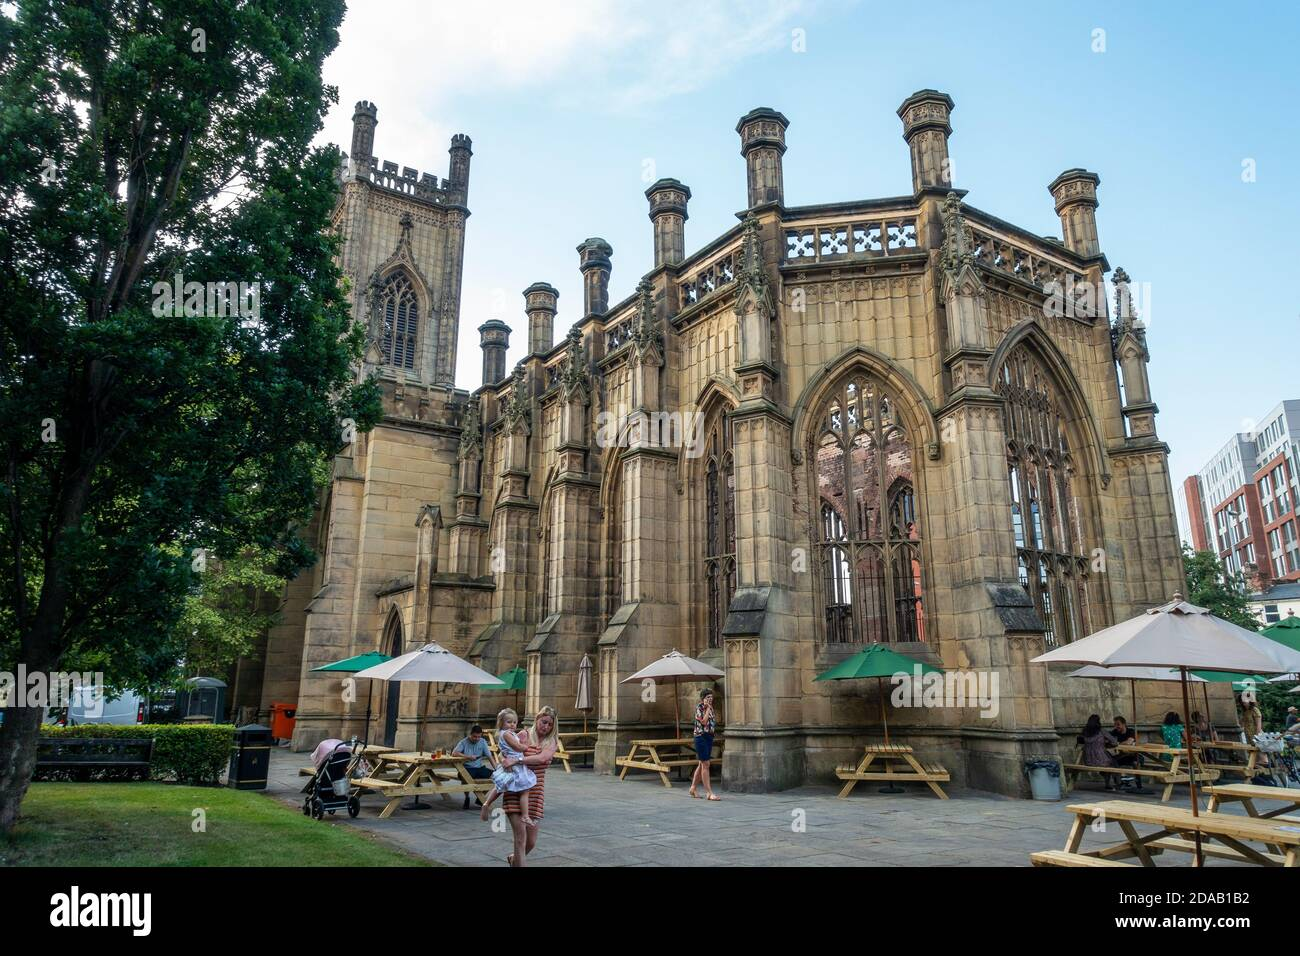 Temporary outdoor drinking venue in grounds of St Luke's Church, known locally as the bombed-out church, in Liverpool, England, UK Stock Photo